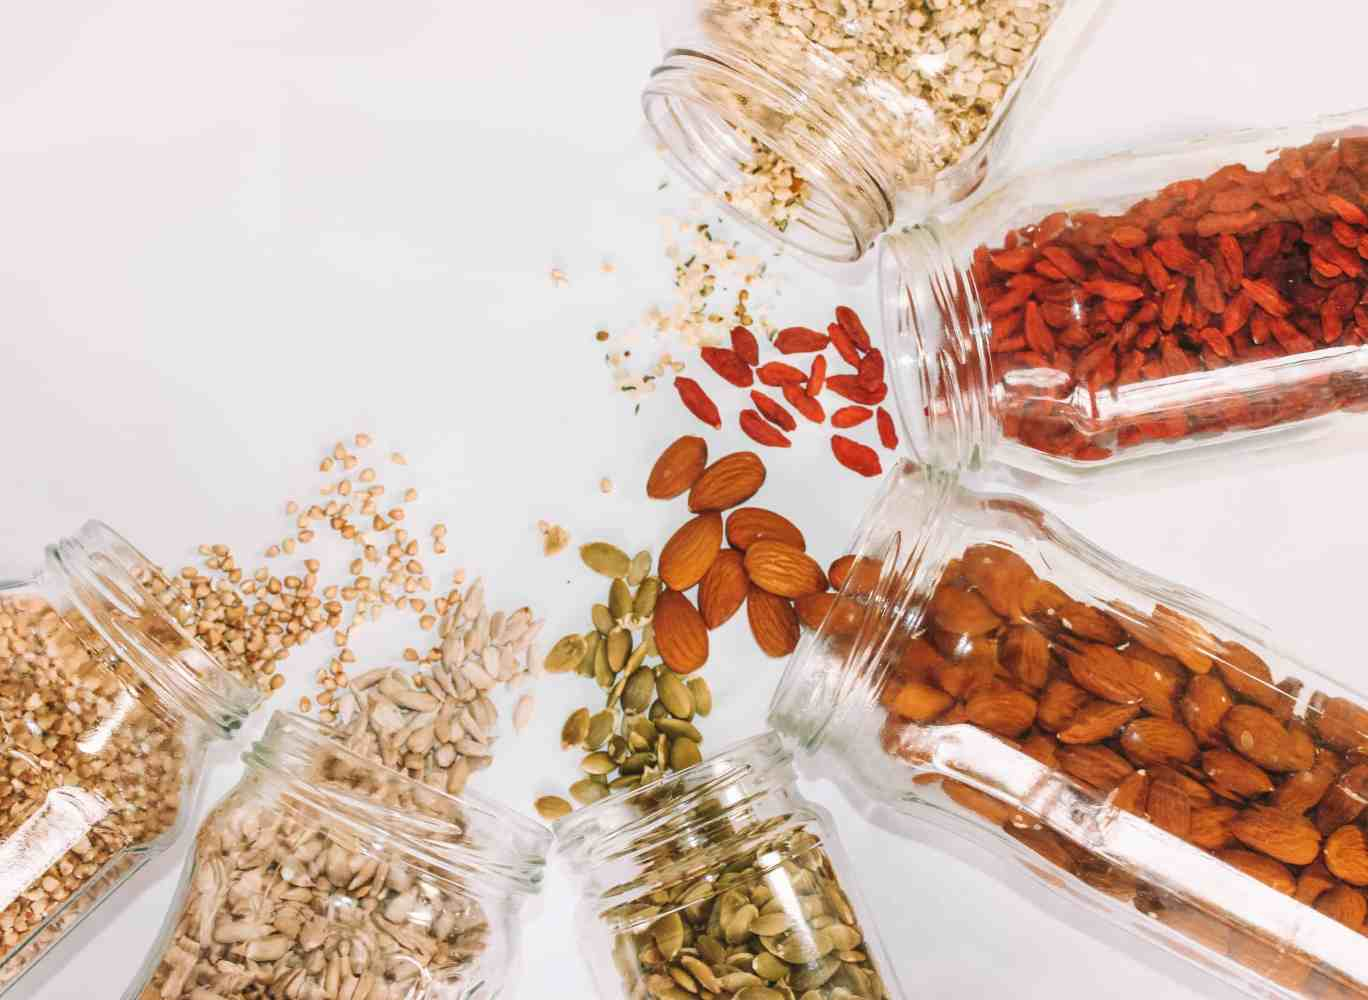 seeds are a superfood for pregnant women